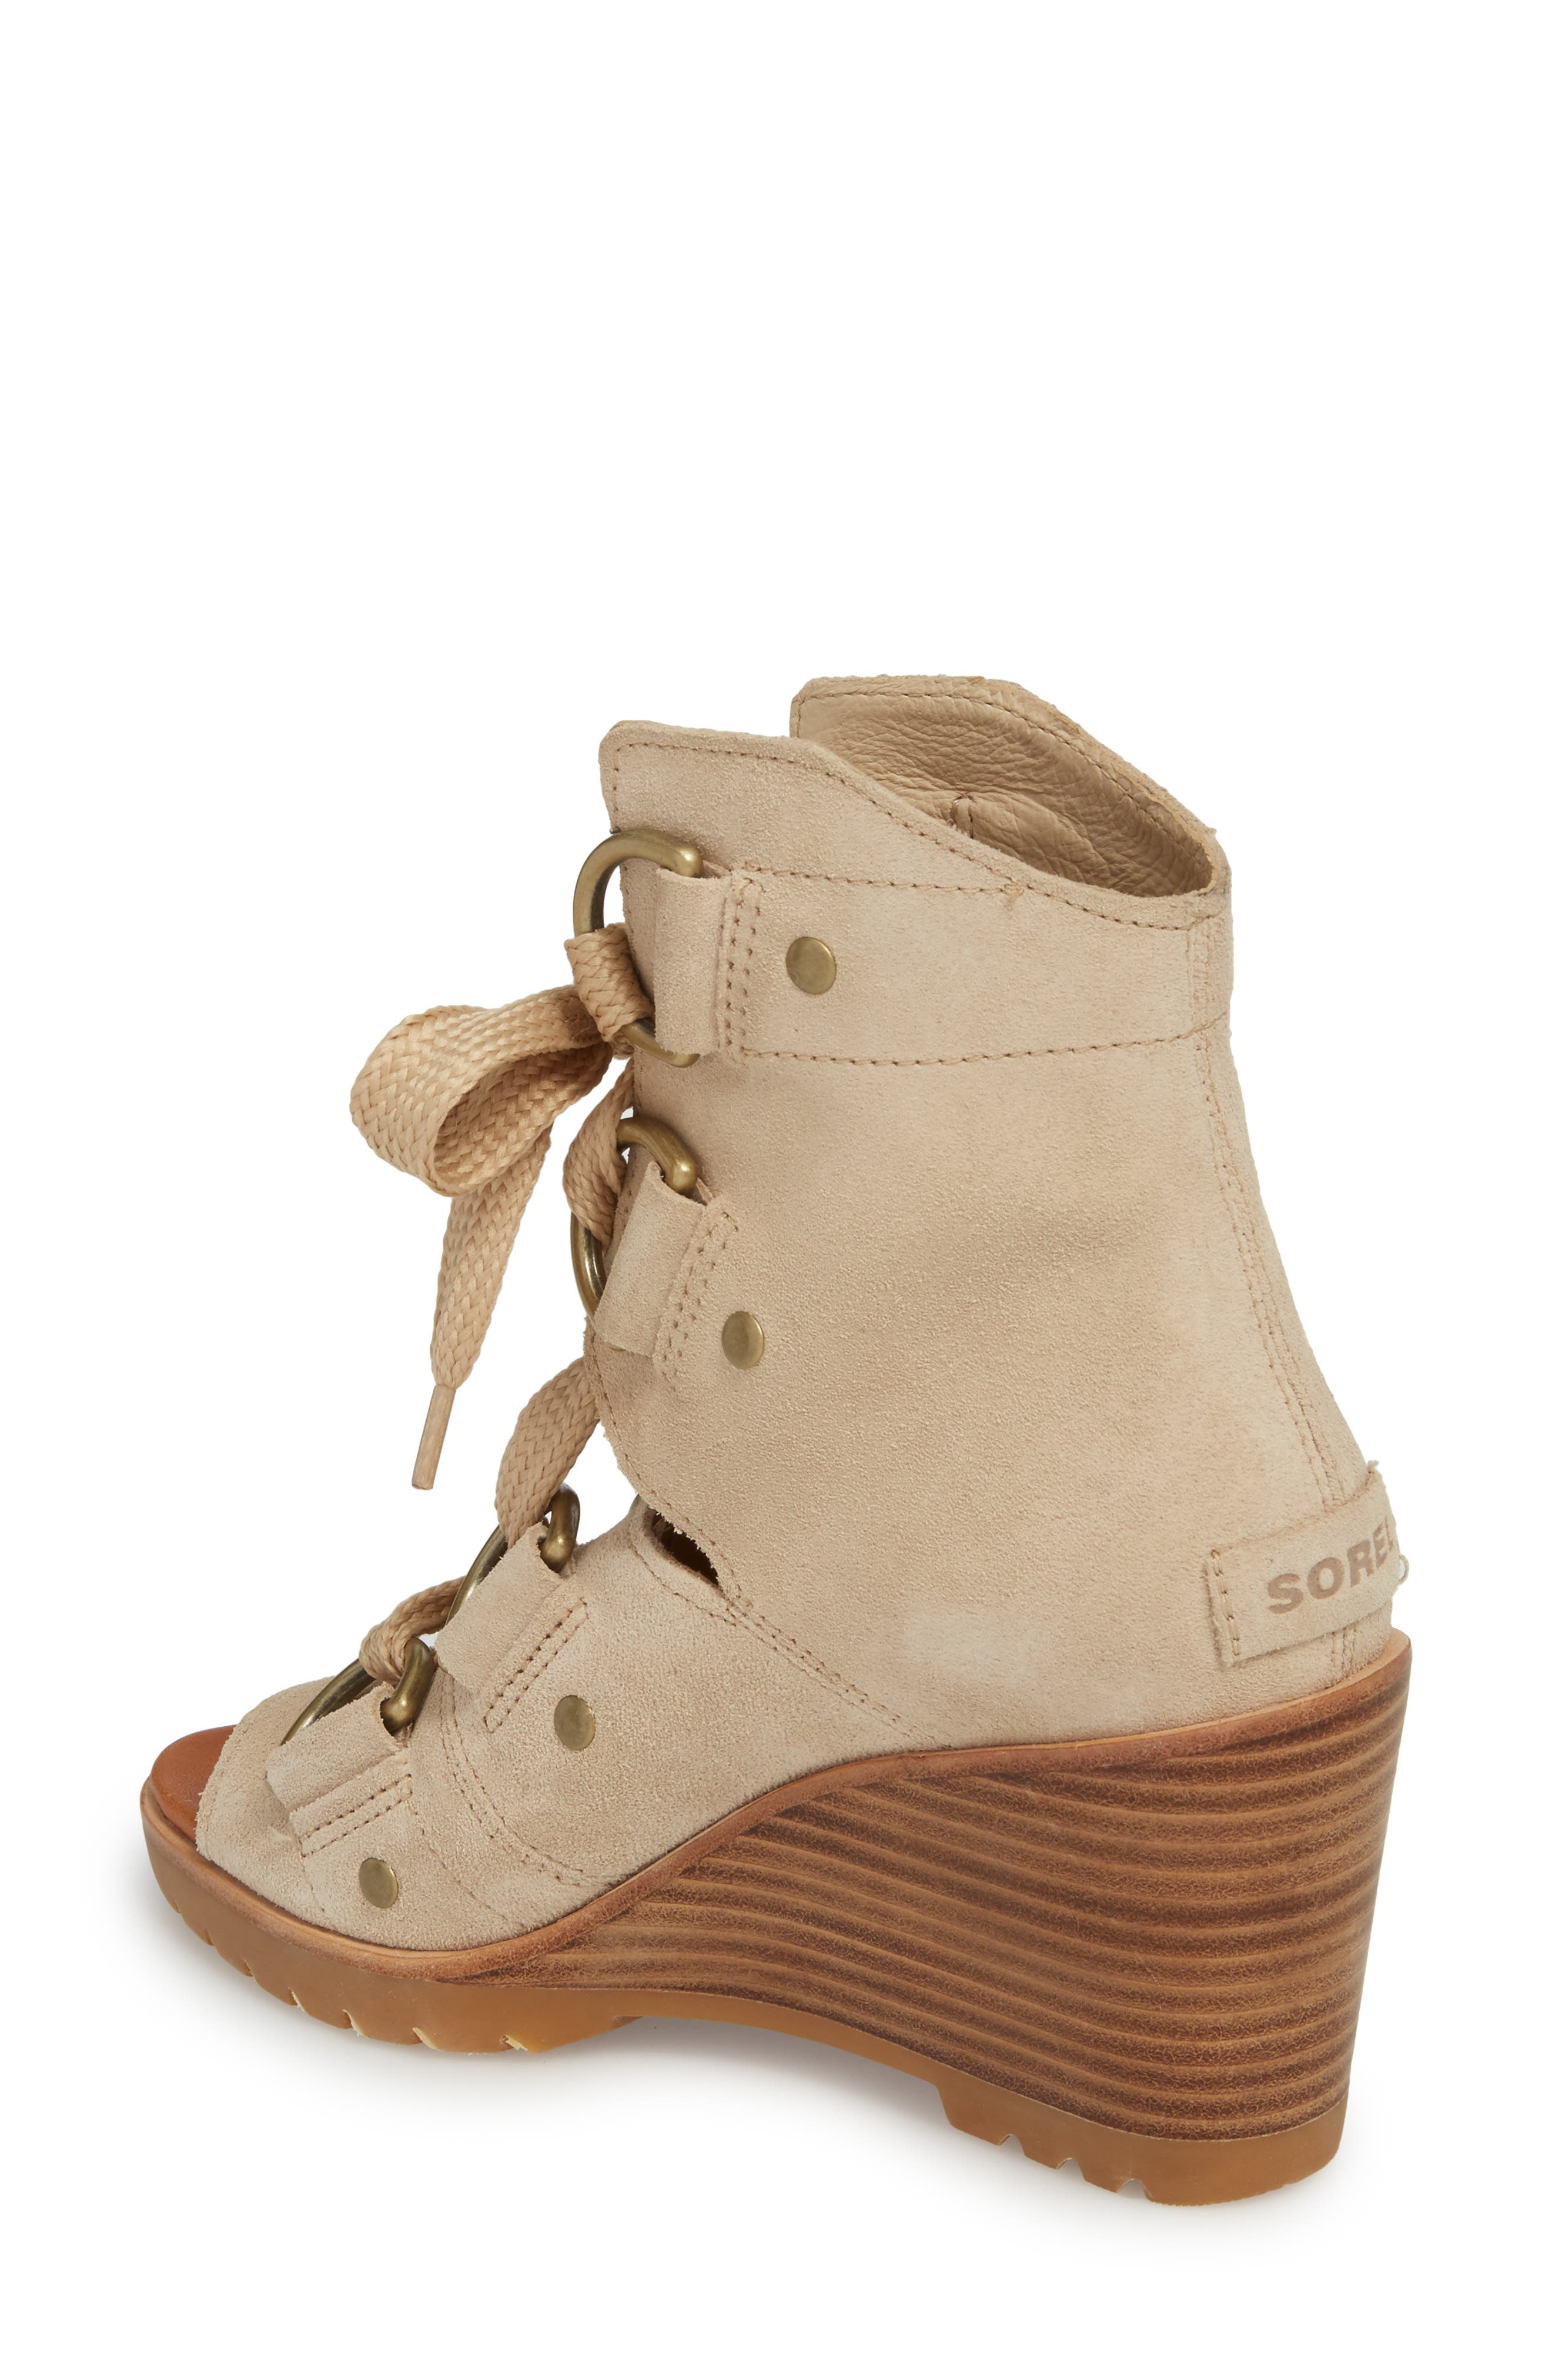 After Hours Wedge Bootie,                             Alternate thumbnail 2, color,                             250